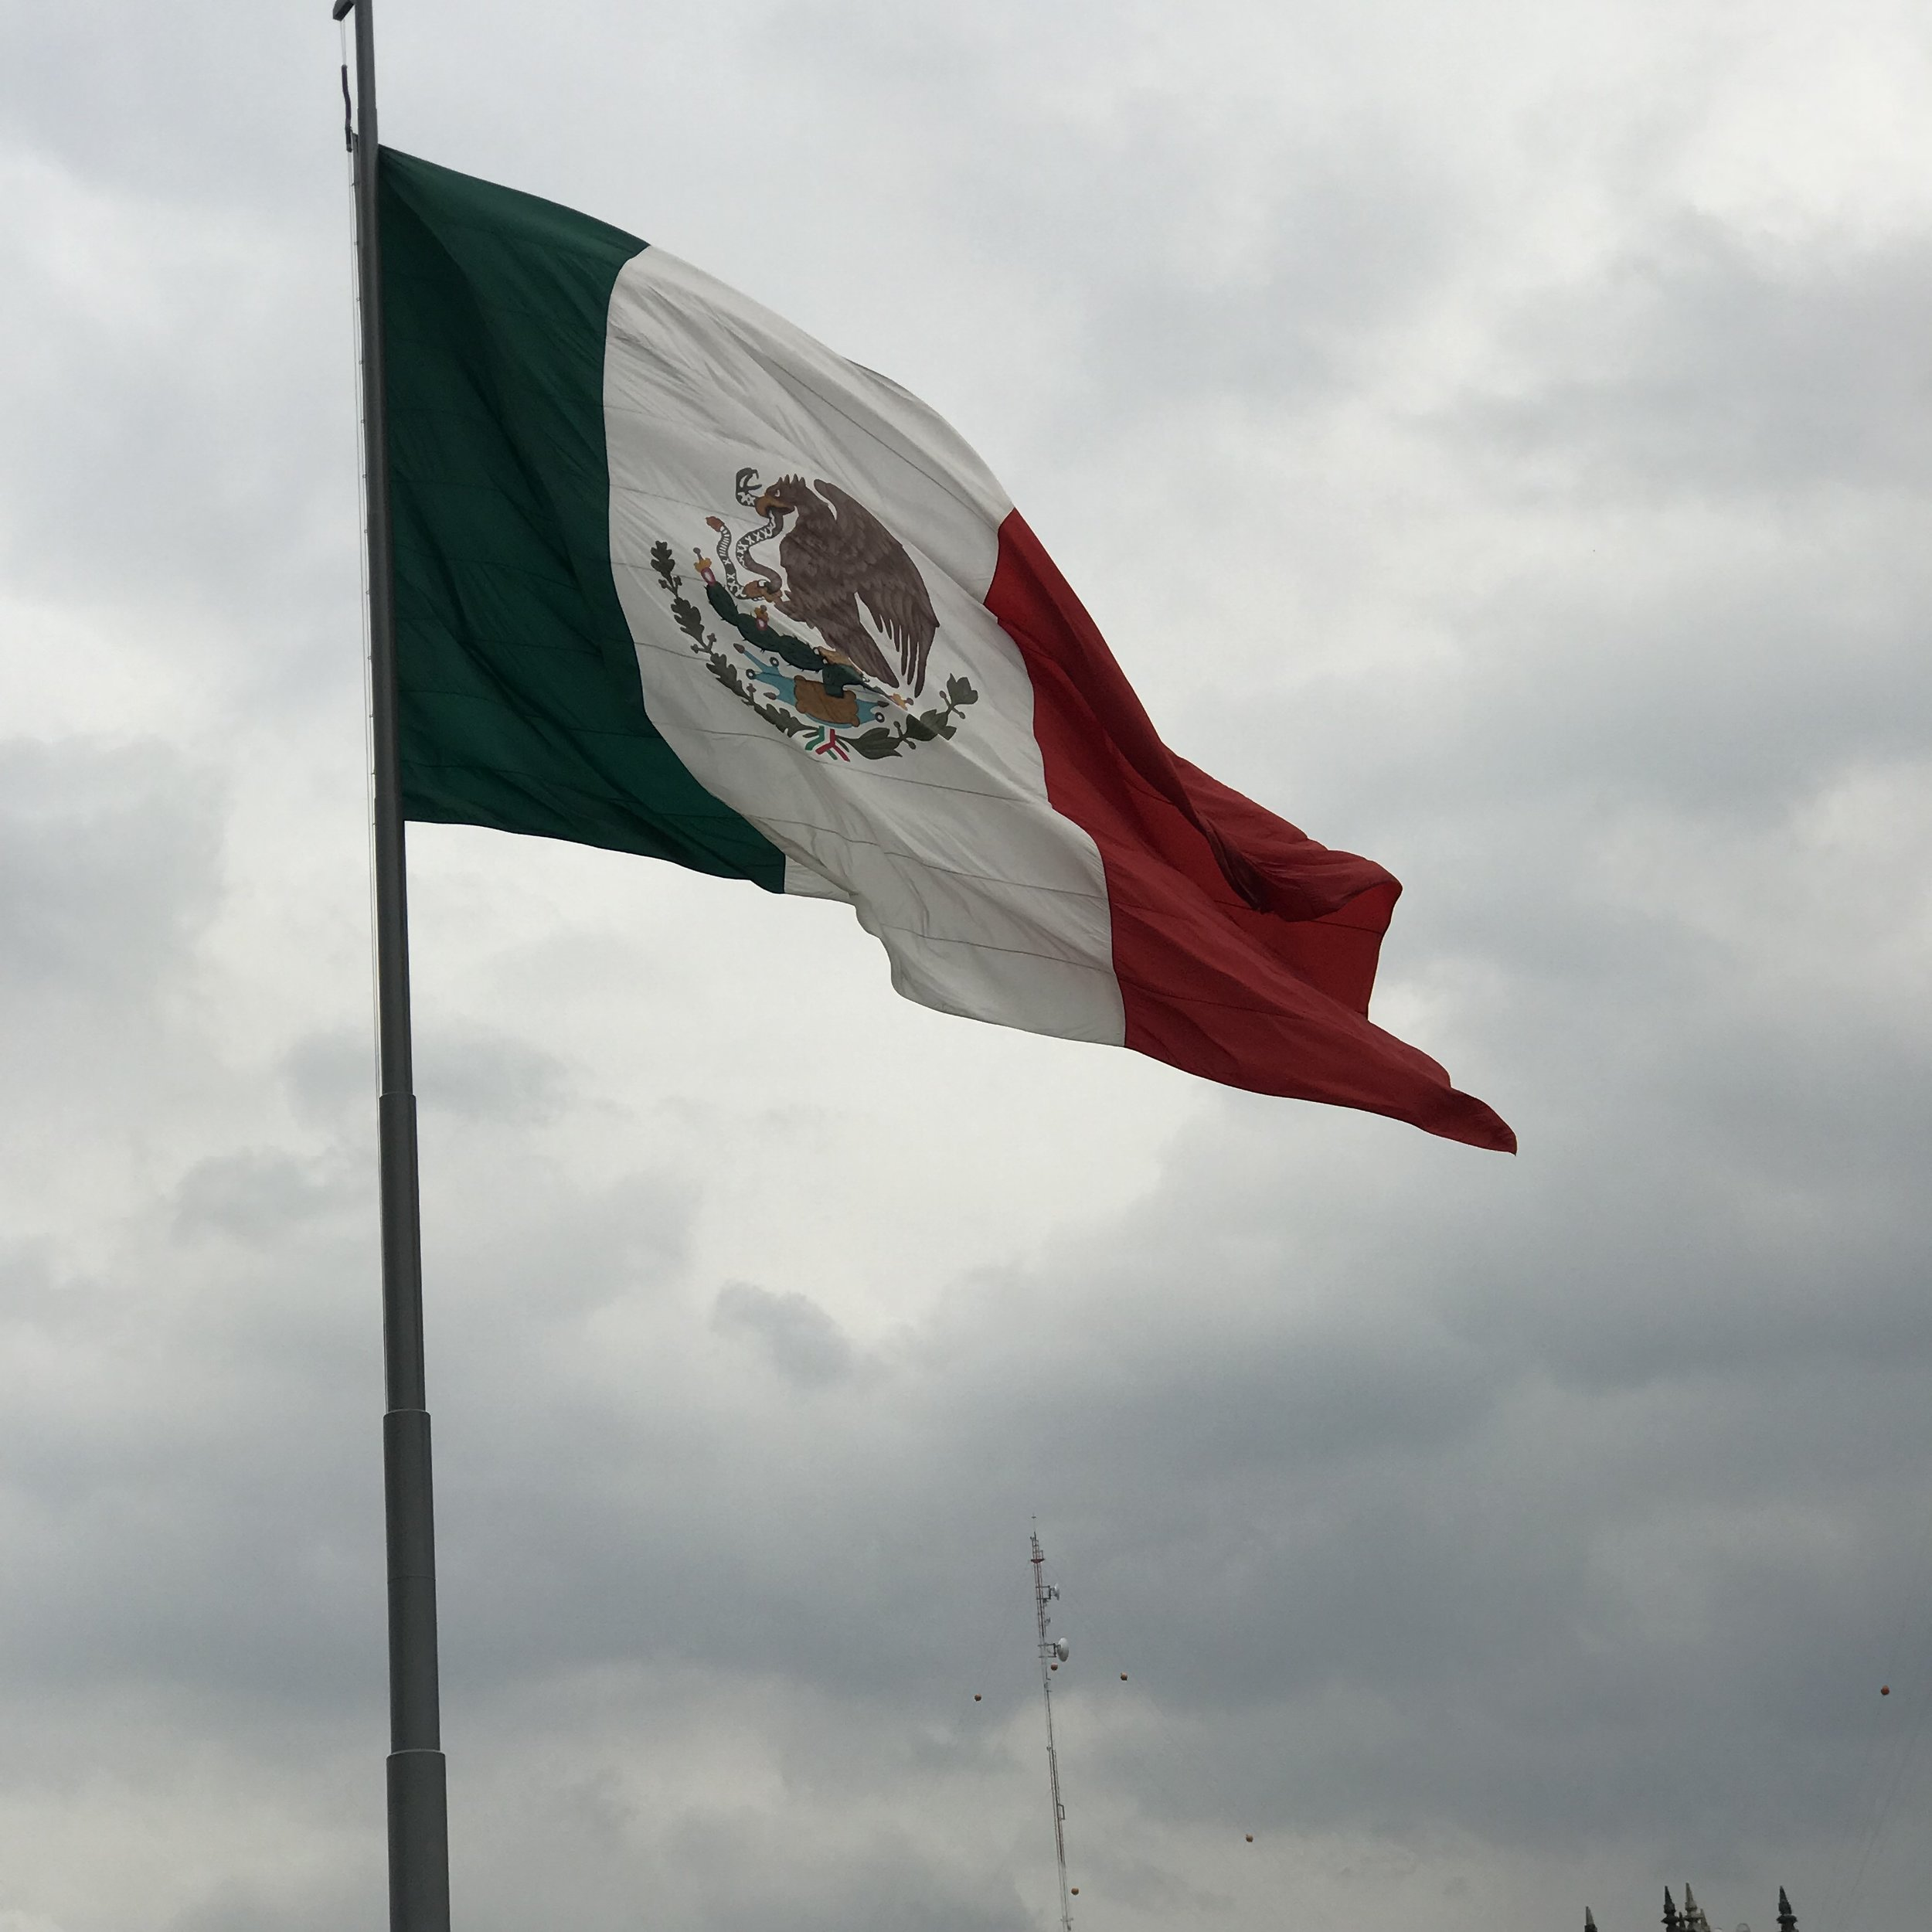 The Mexican flag at the Zócolo, June 2018